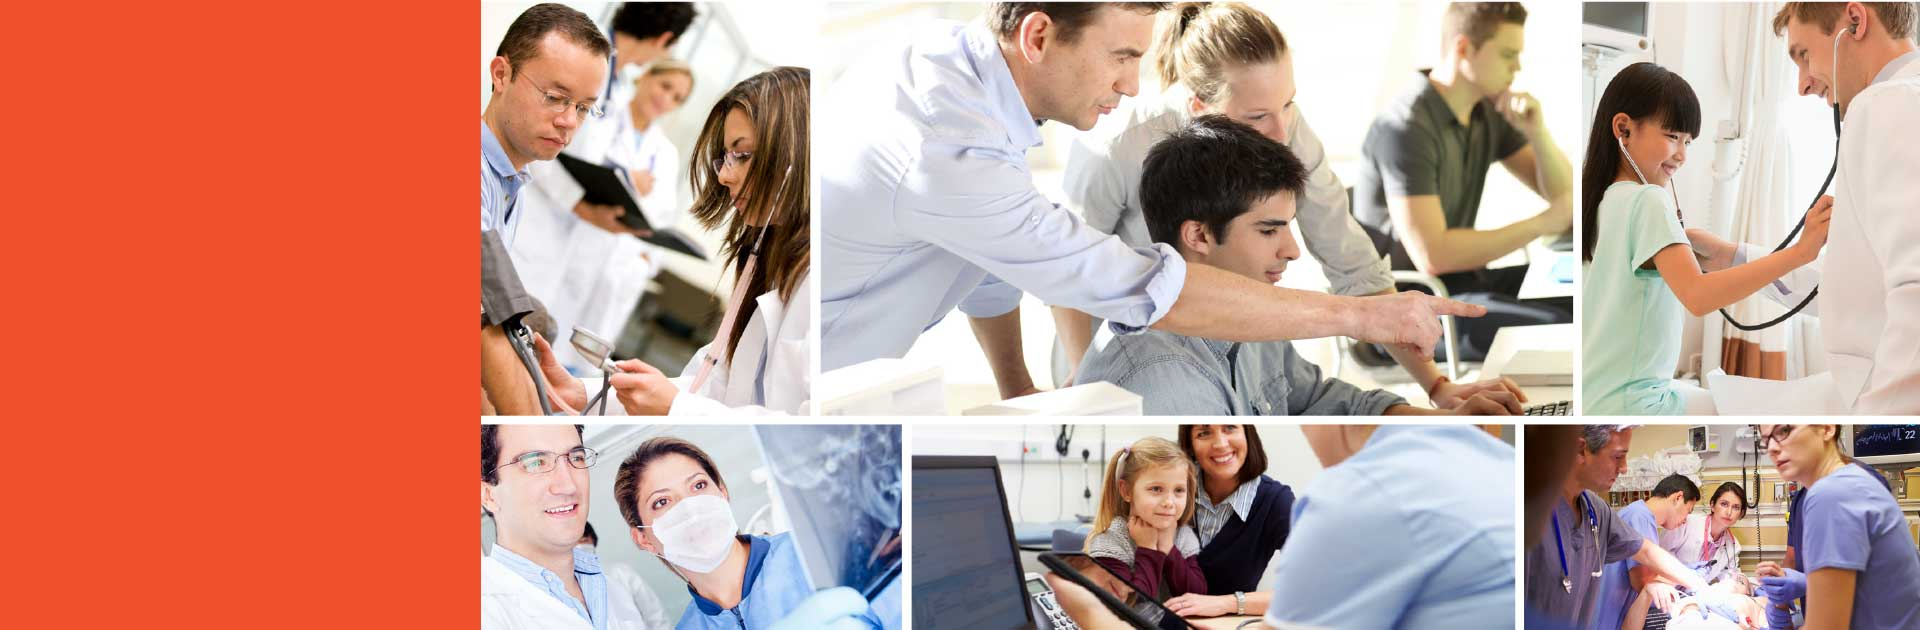 collage of doctors and patients interacting